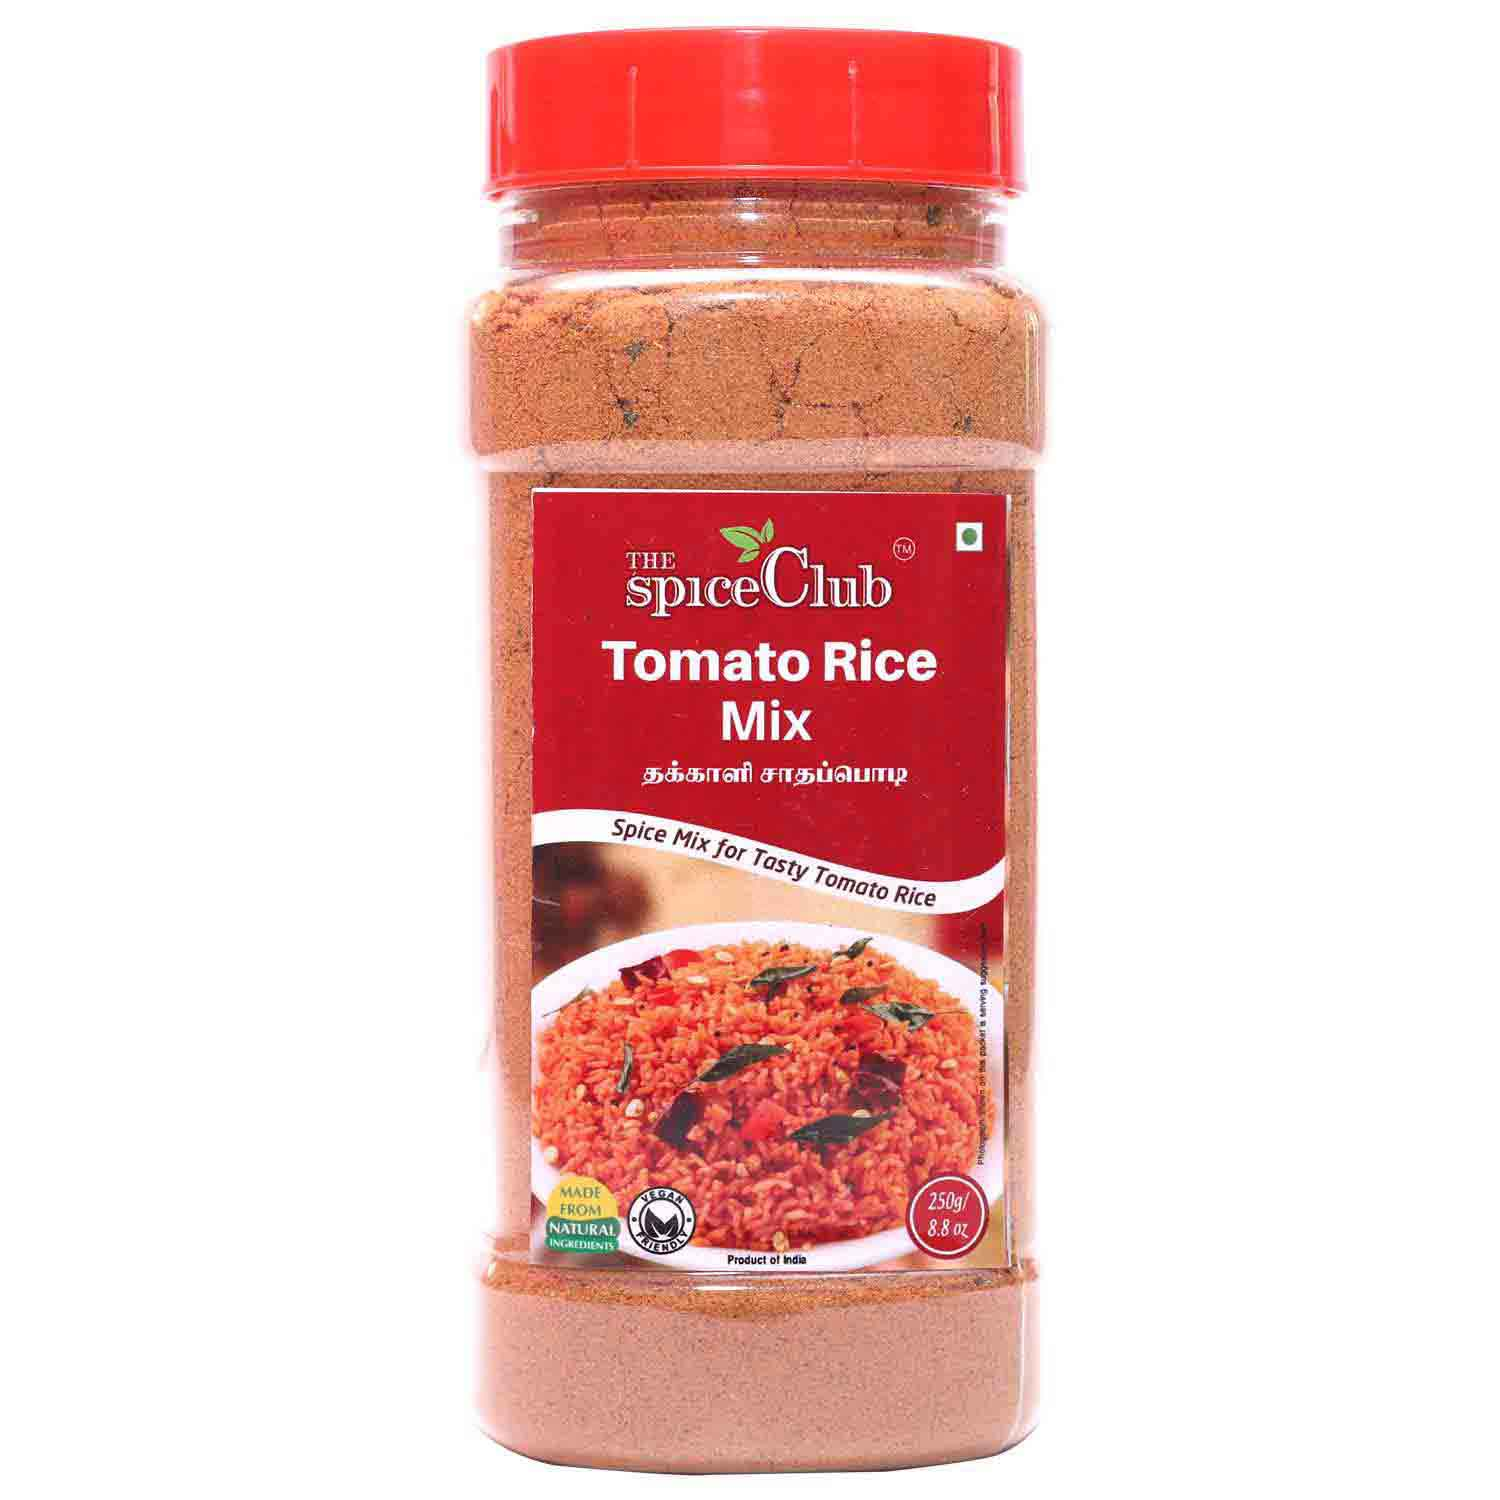 Tomato Rice Mix 250g Jar